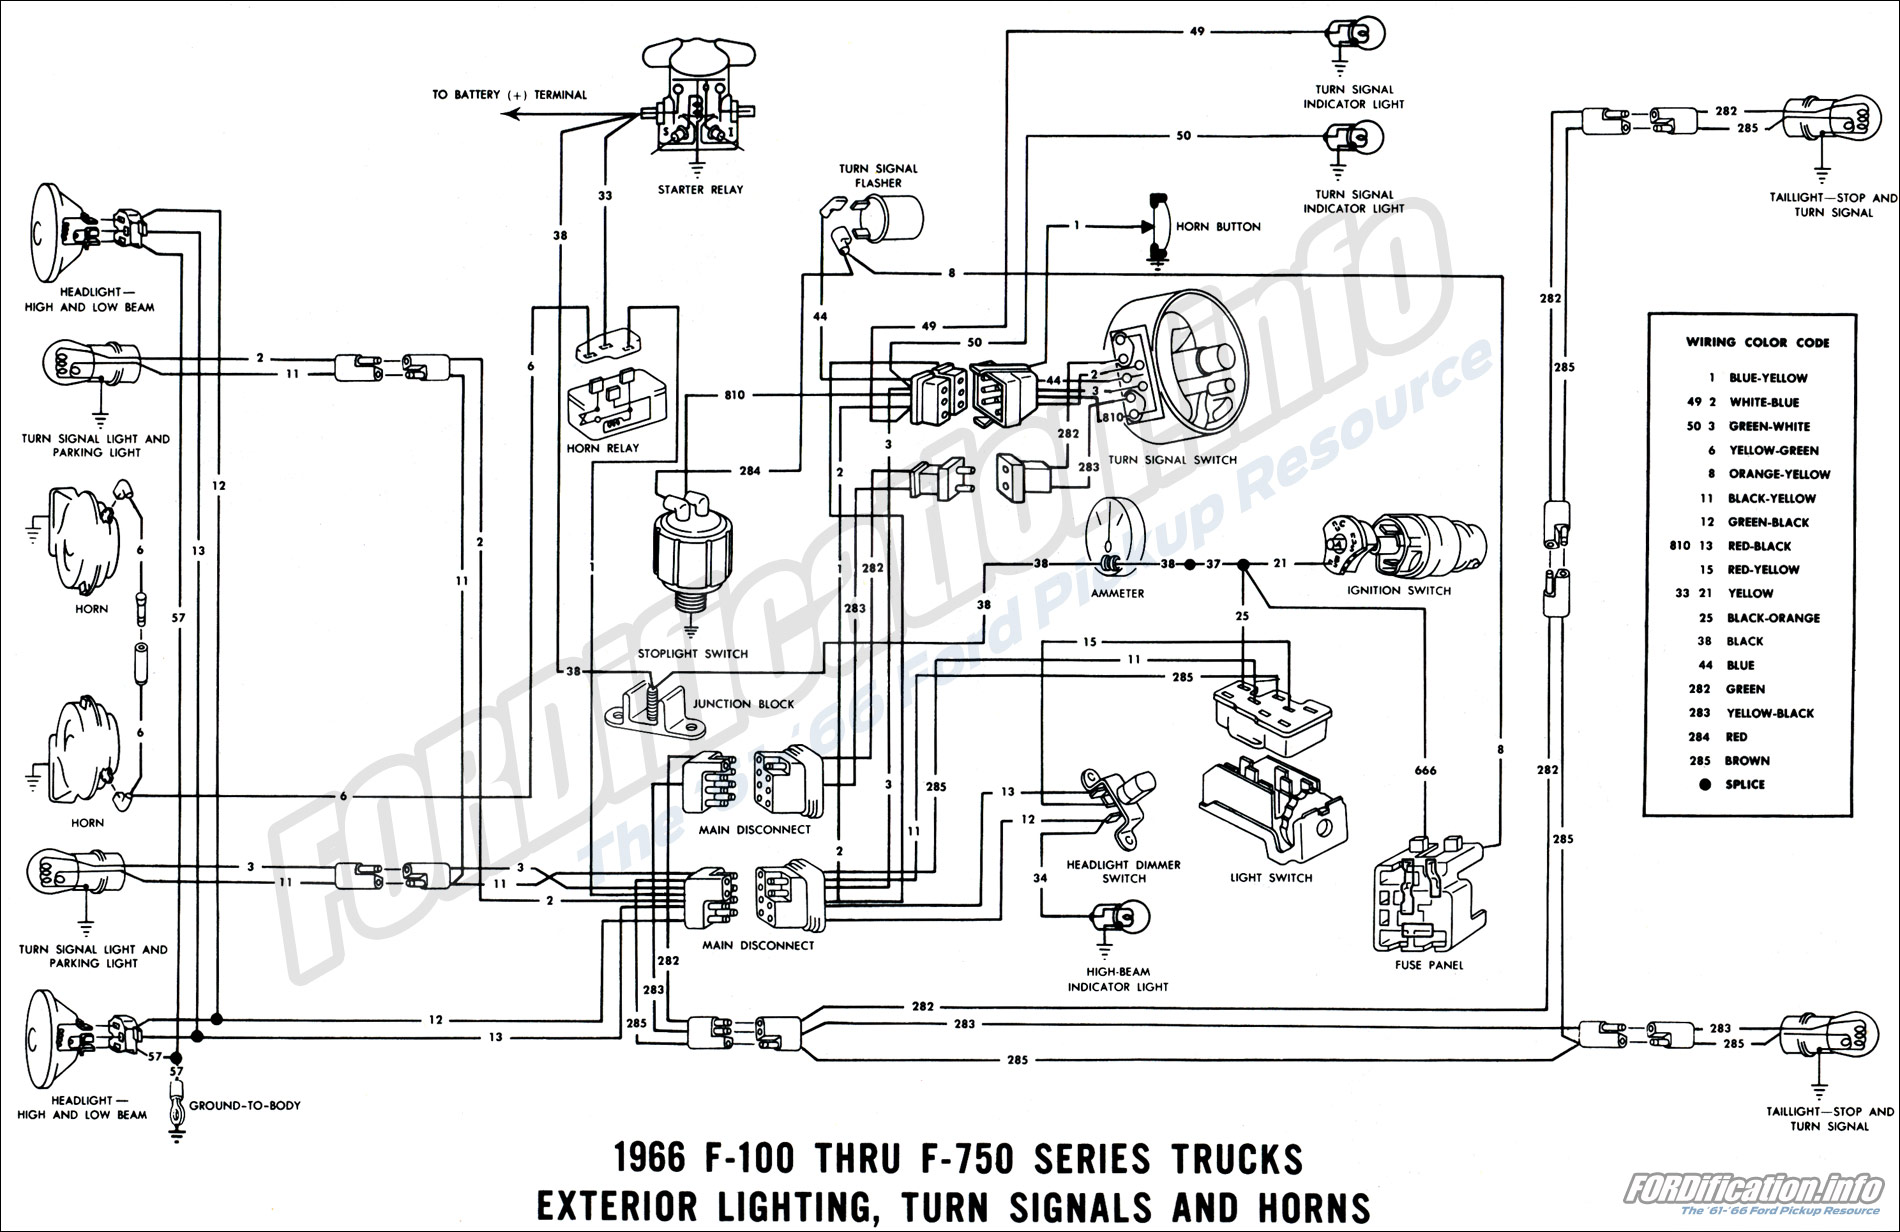 1966 ford f100 wiring schematic simple wiring diagram rh david huggett co  uk 1965 ford f100 alternator wiring diagram